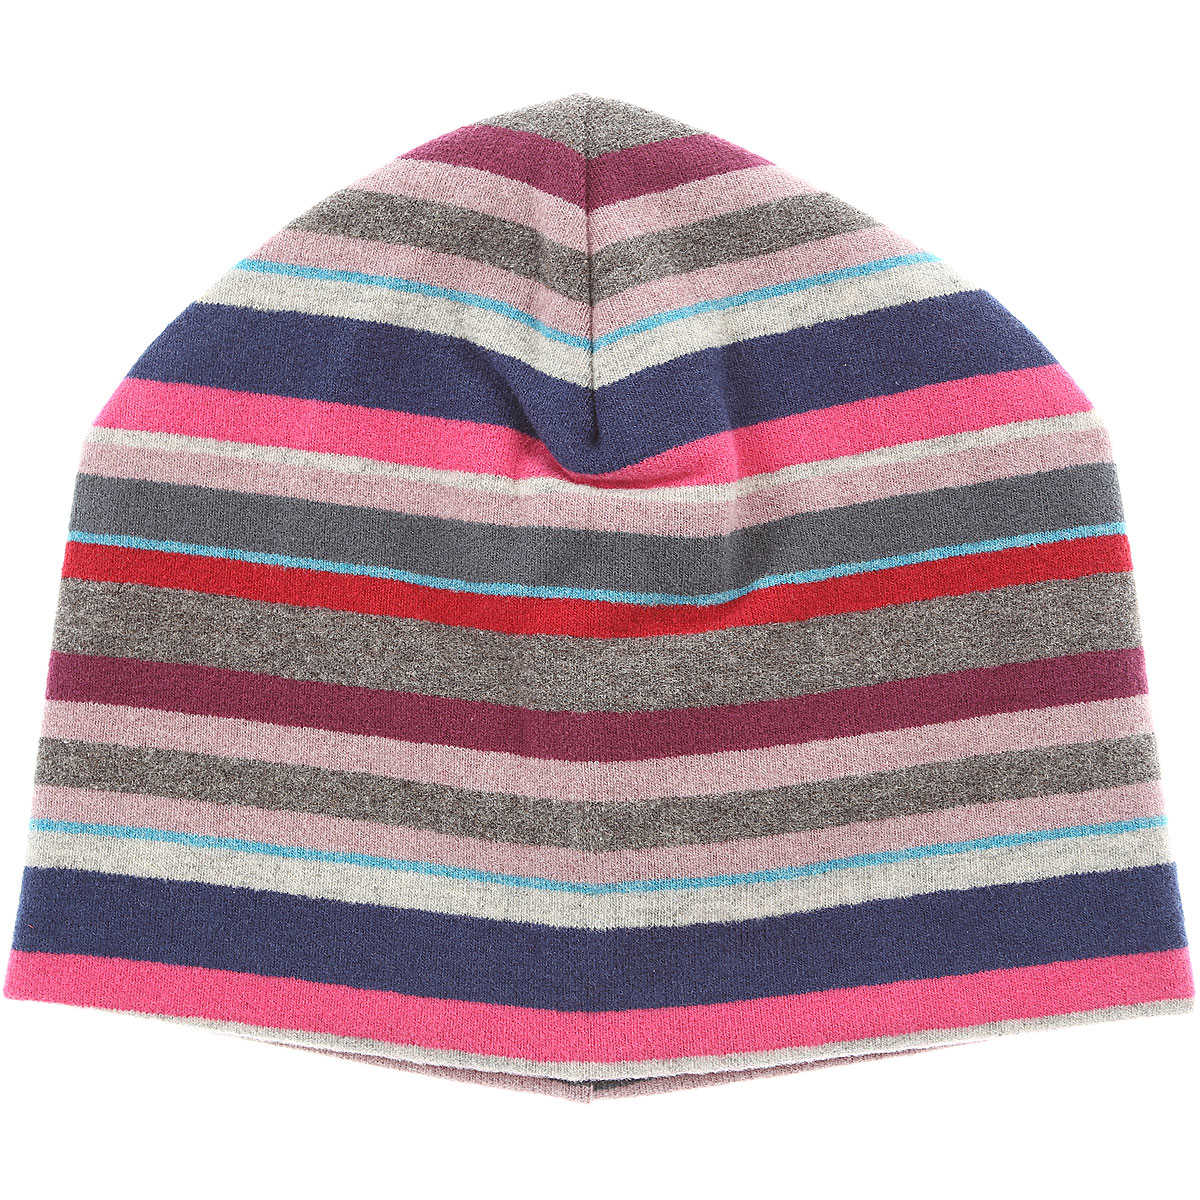 Gallo Kids Hats for Girls On Sale in Outlet Grey SE - GOOFASH